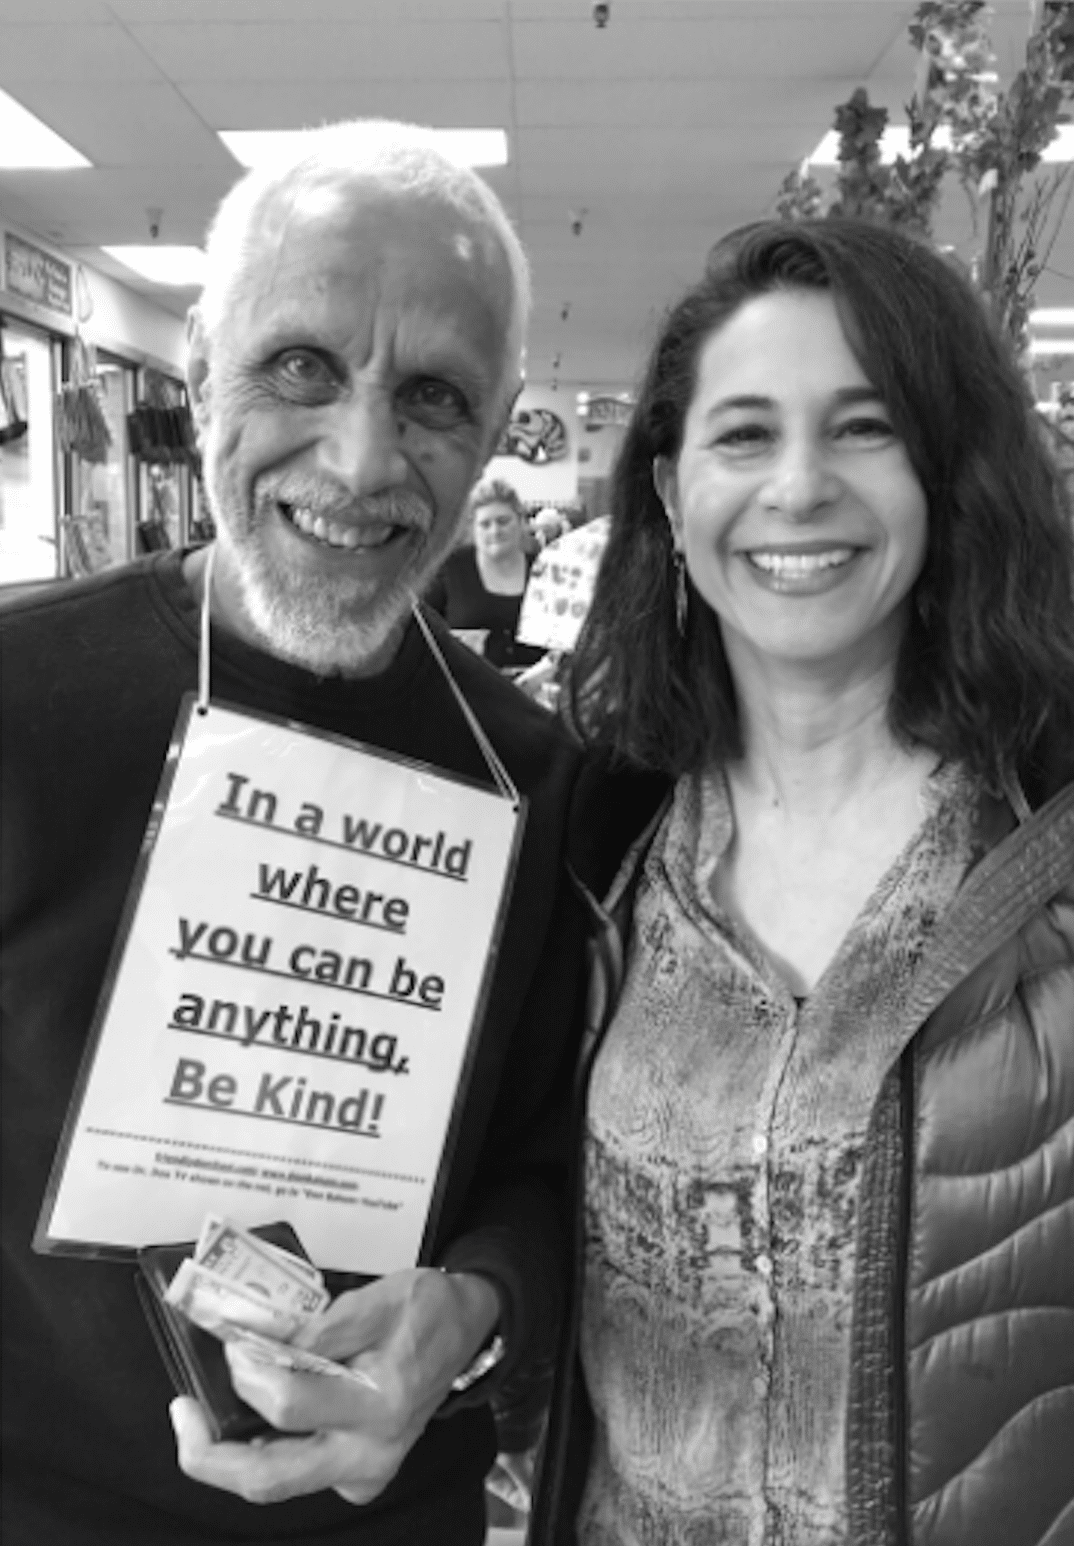 """A black and white photo of Linda Cohen and a man with a sign that reads, """"In a world where you can be anything, be kind!"""""""